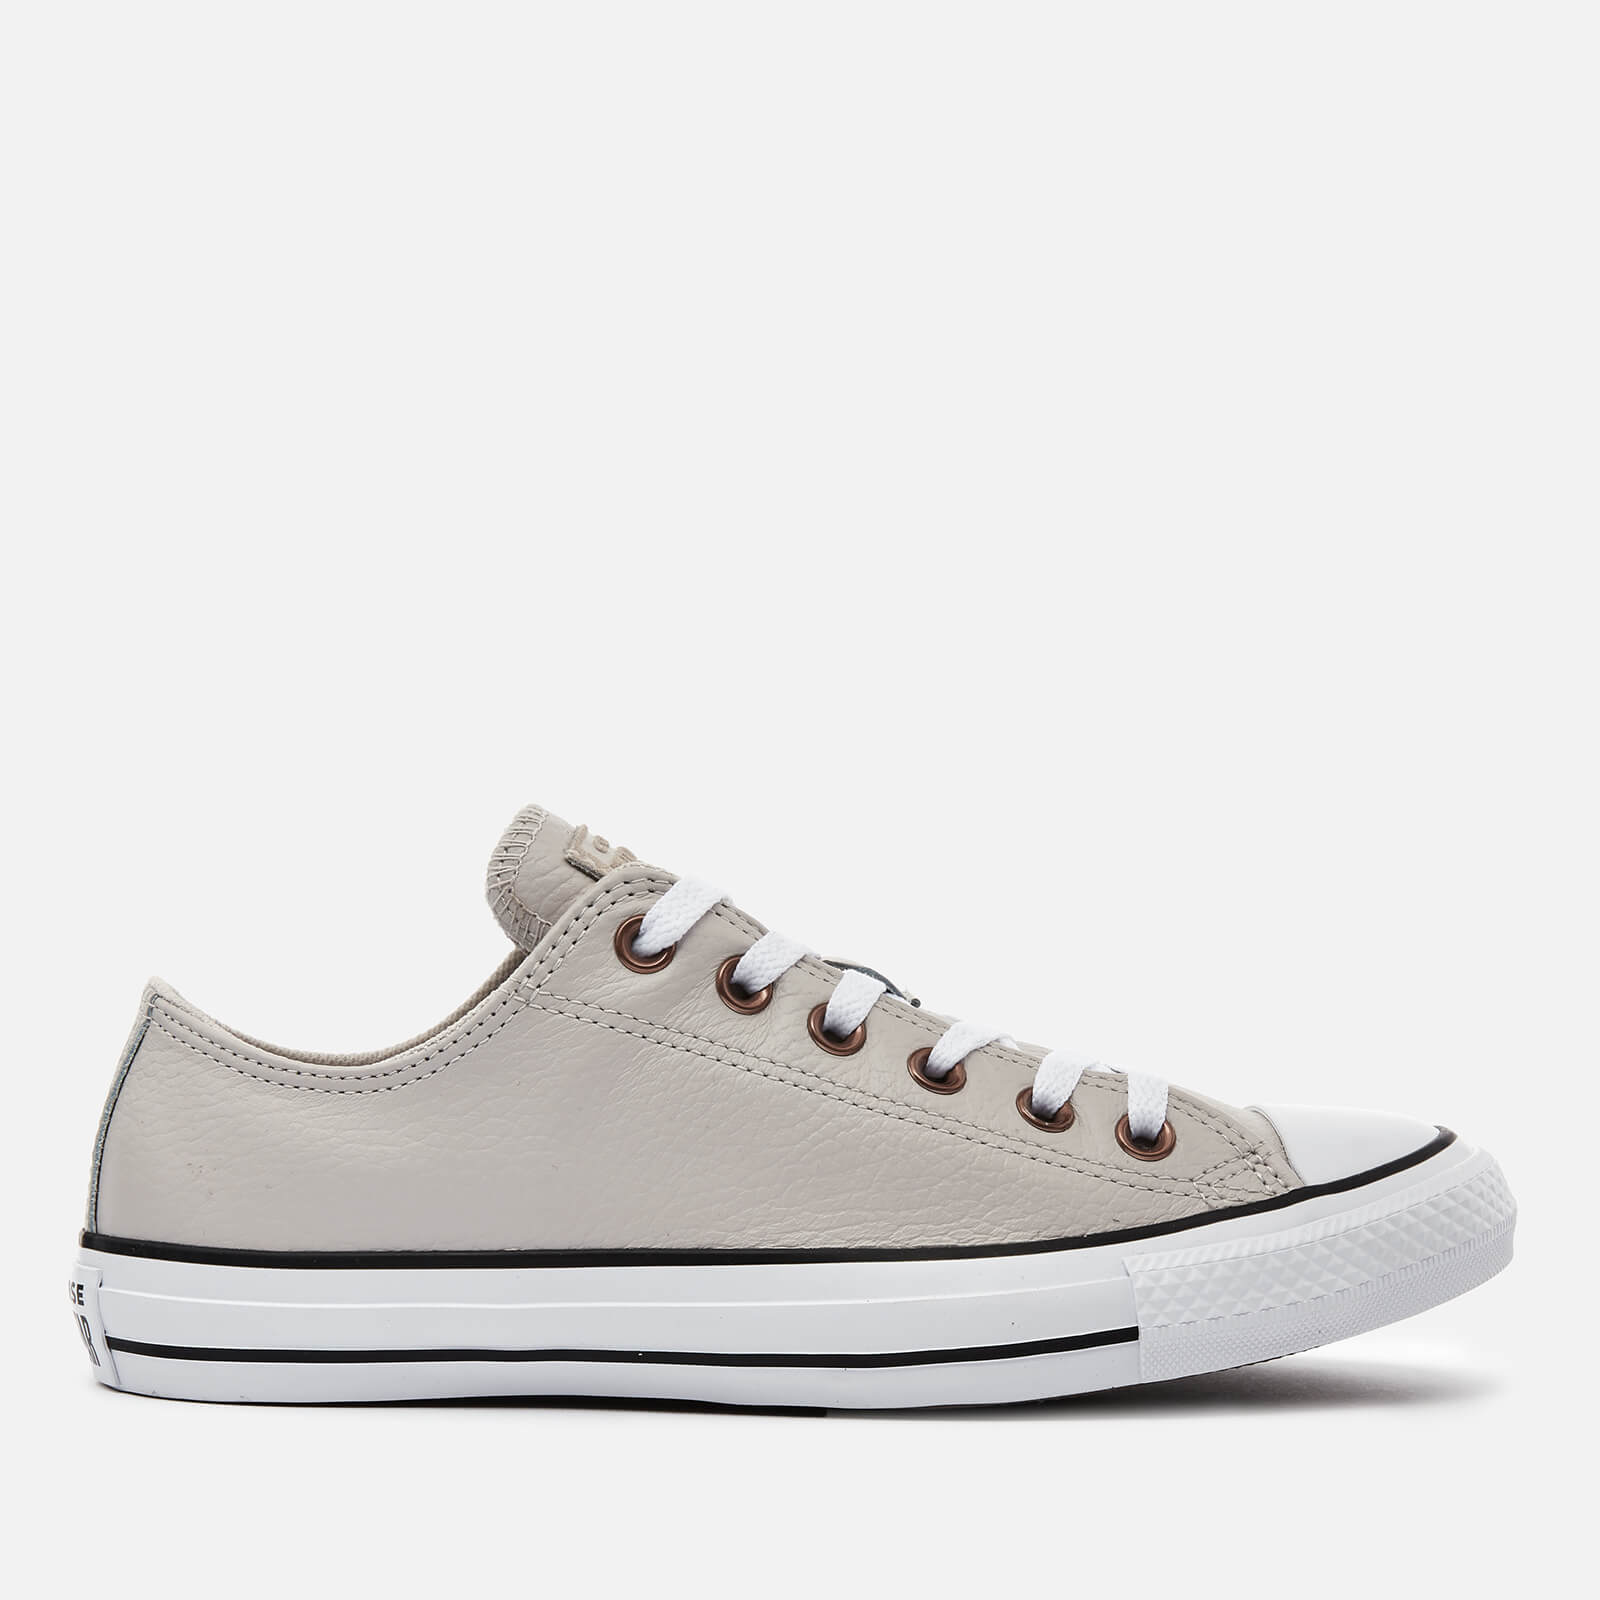 Converse Men's Chuck Taylor All Star Leather Ox Trainers Pale PuttyWhiteBlack